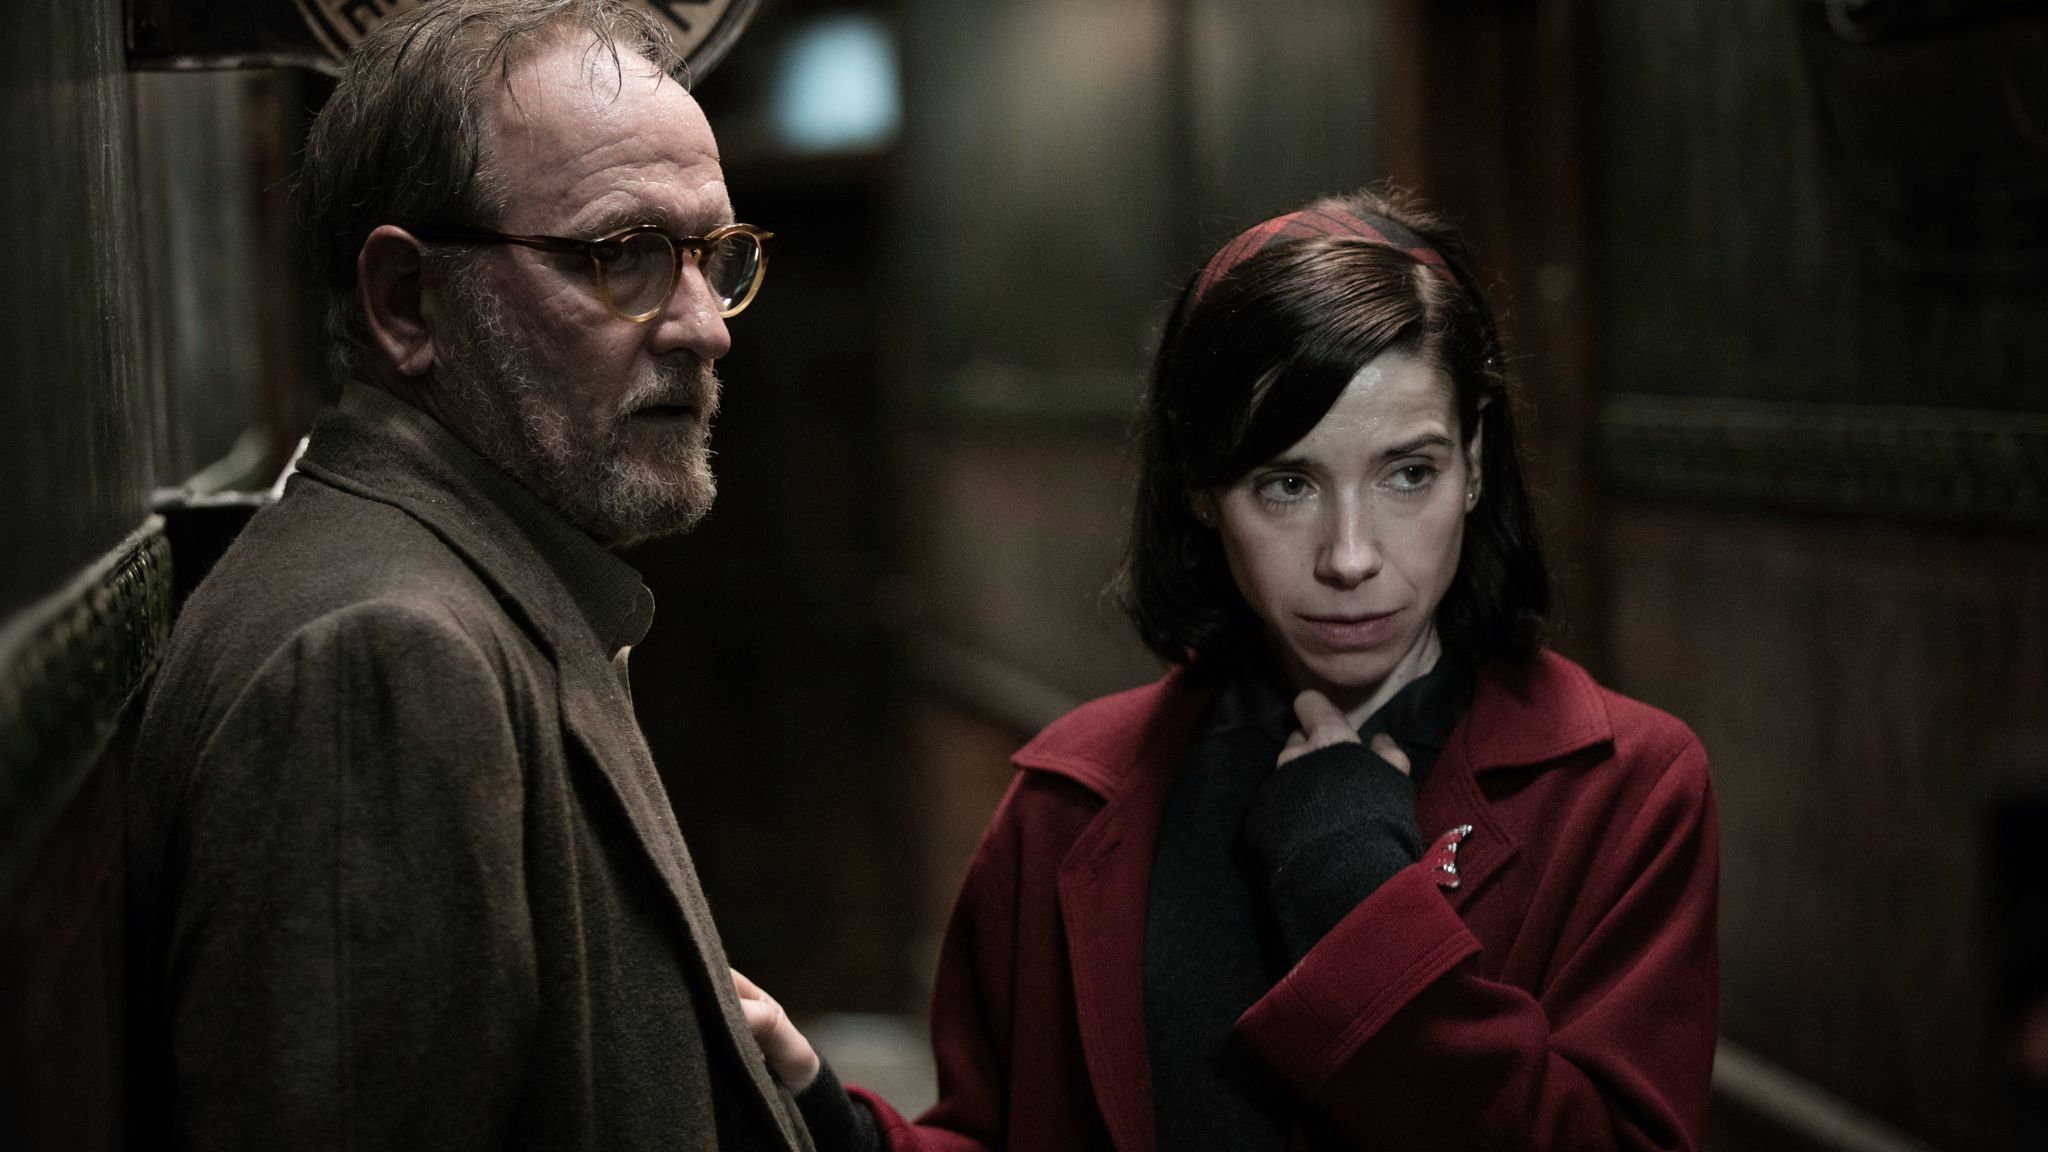 """Richard Jenkins and Sally Hawkins in the film """"The Shape of Water."""" (Kerry Hayes / Fox Searchlight Pictures)"""